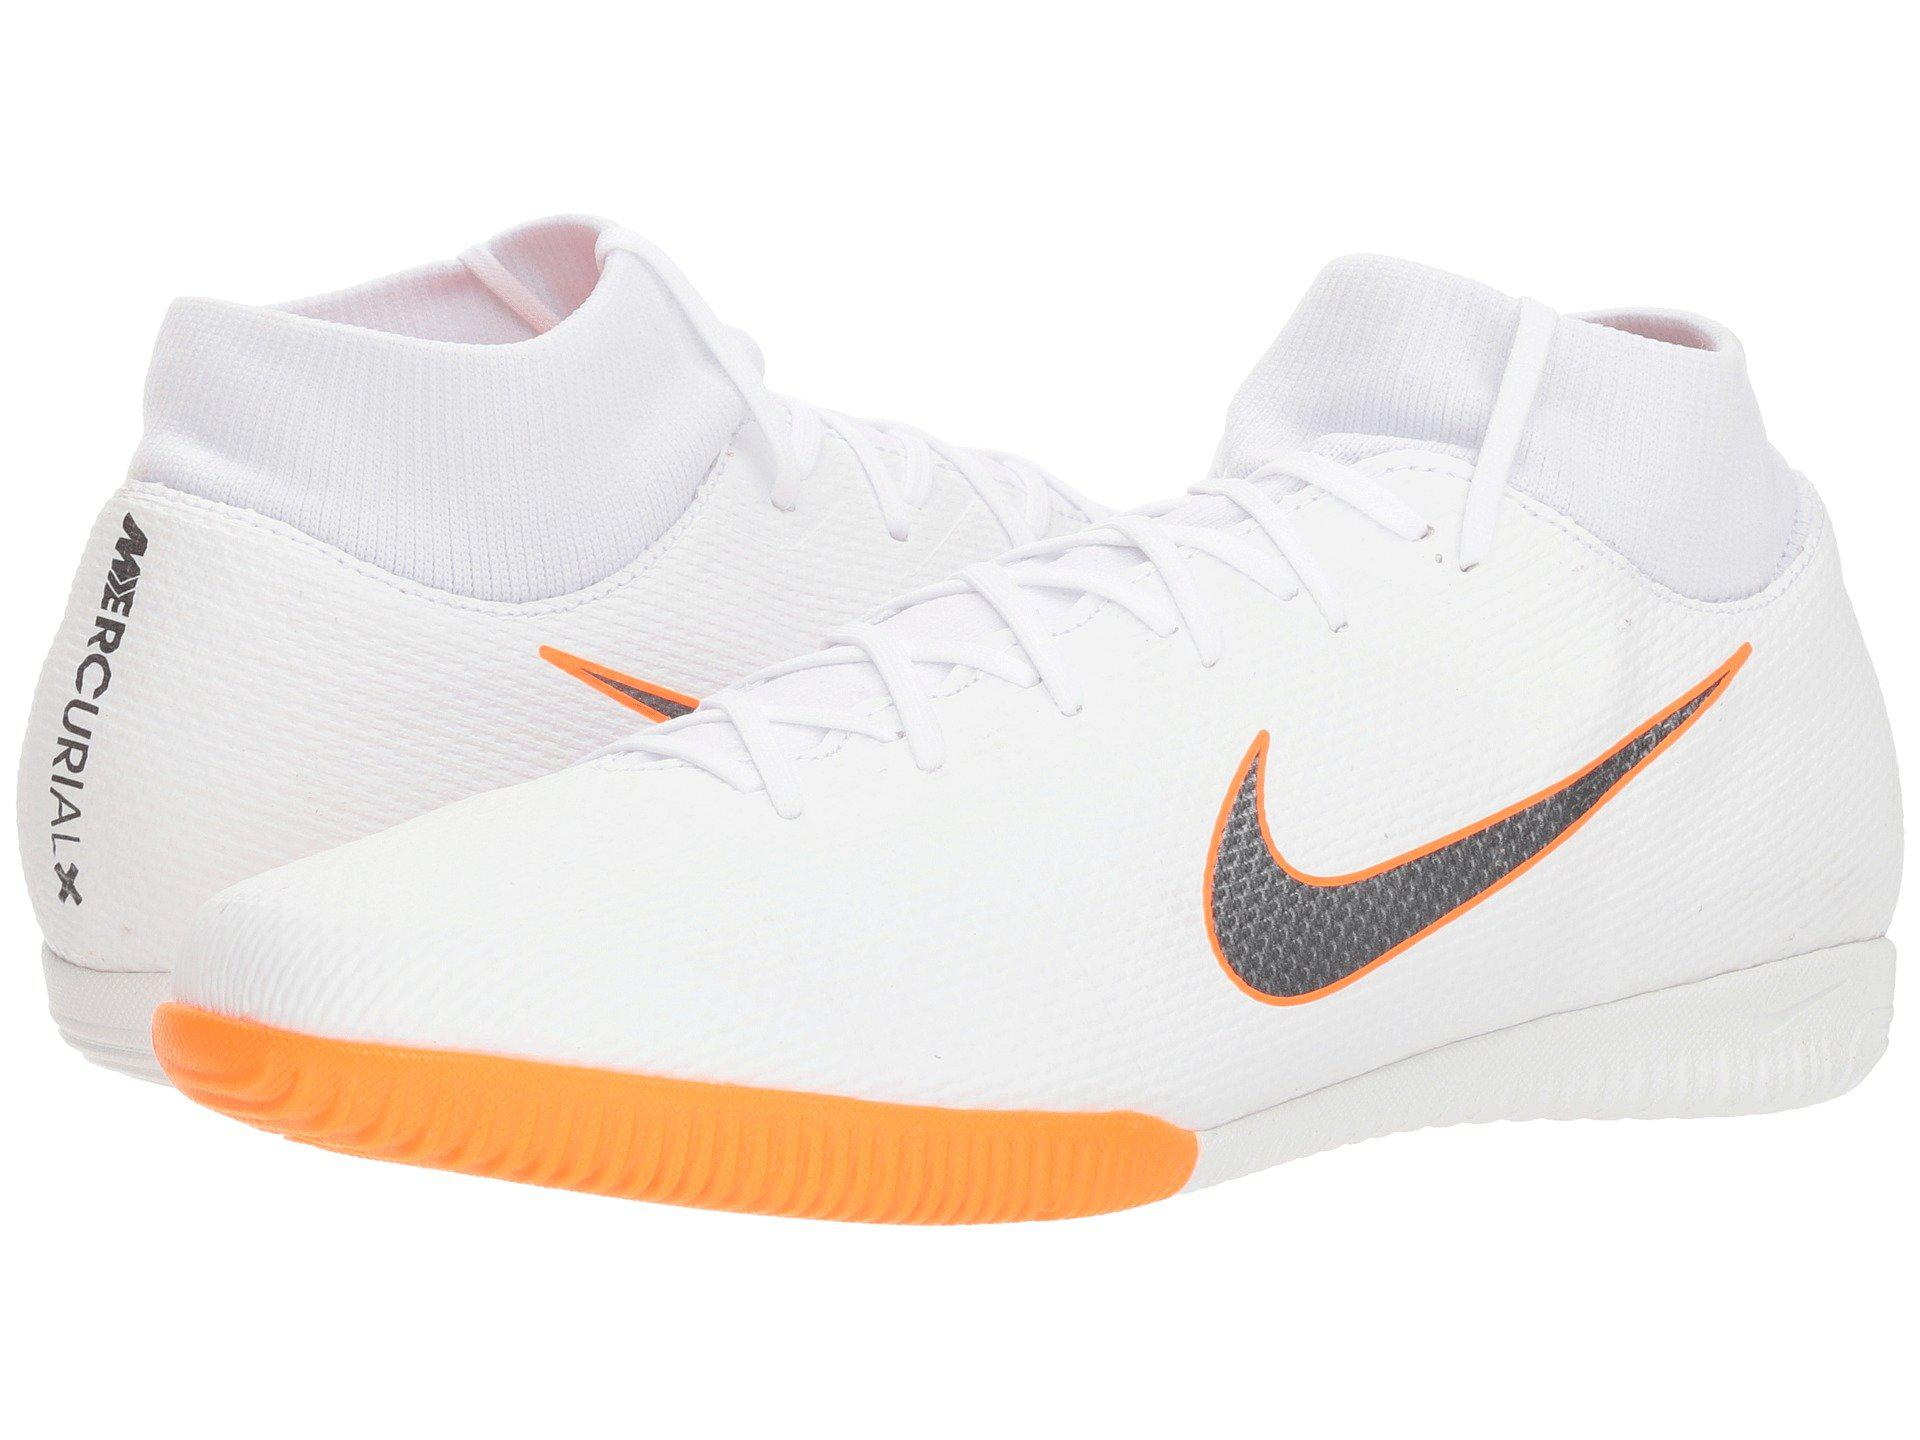 check out 0f9a0 d1c90 Nike. Men s White Superflyx 6 ...